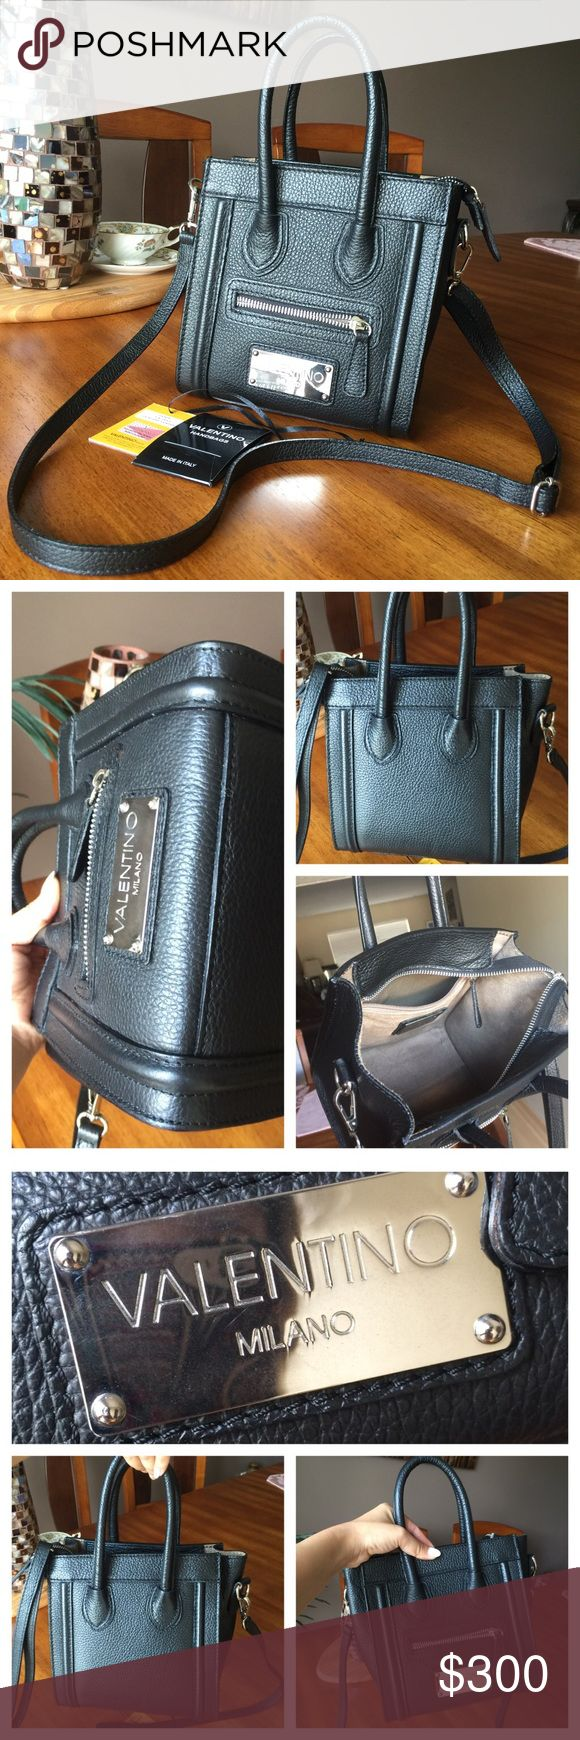 Valentino Crossbody Bag Authentic Valentino Genuine Leather. Used few times, in great condition. 7.5W x 5D x 7.5H . Valentino Bags Crossbody Bags